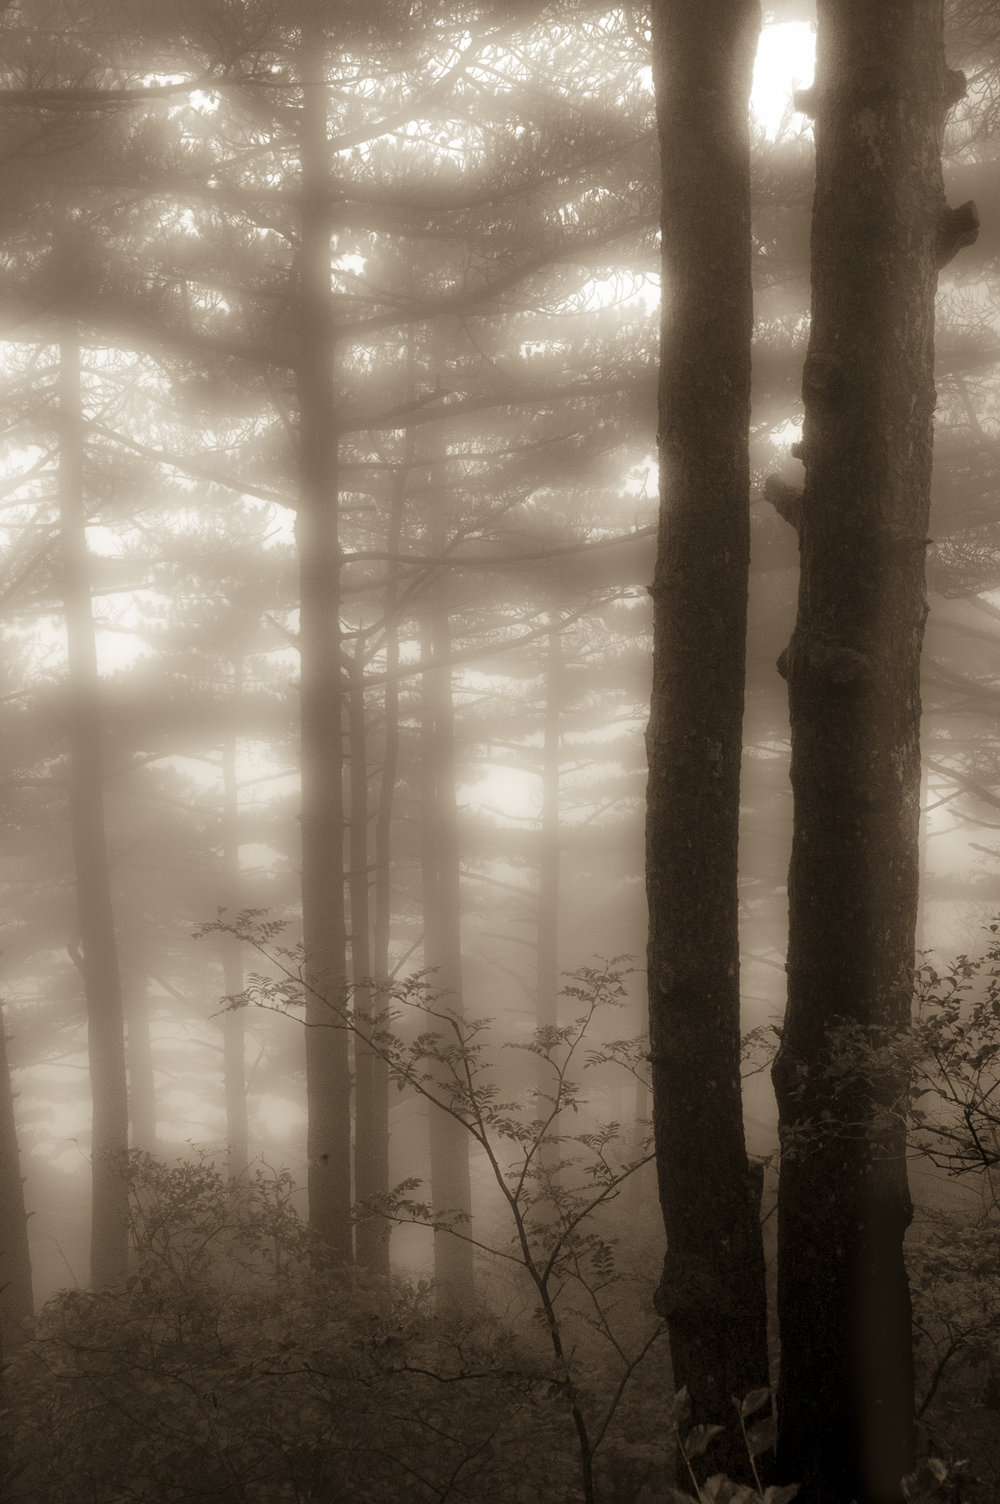 Carol_Horigan_Forest Shrouded in Mist-2V.jpg